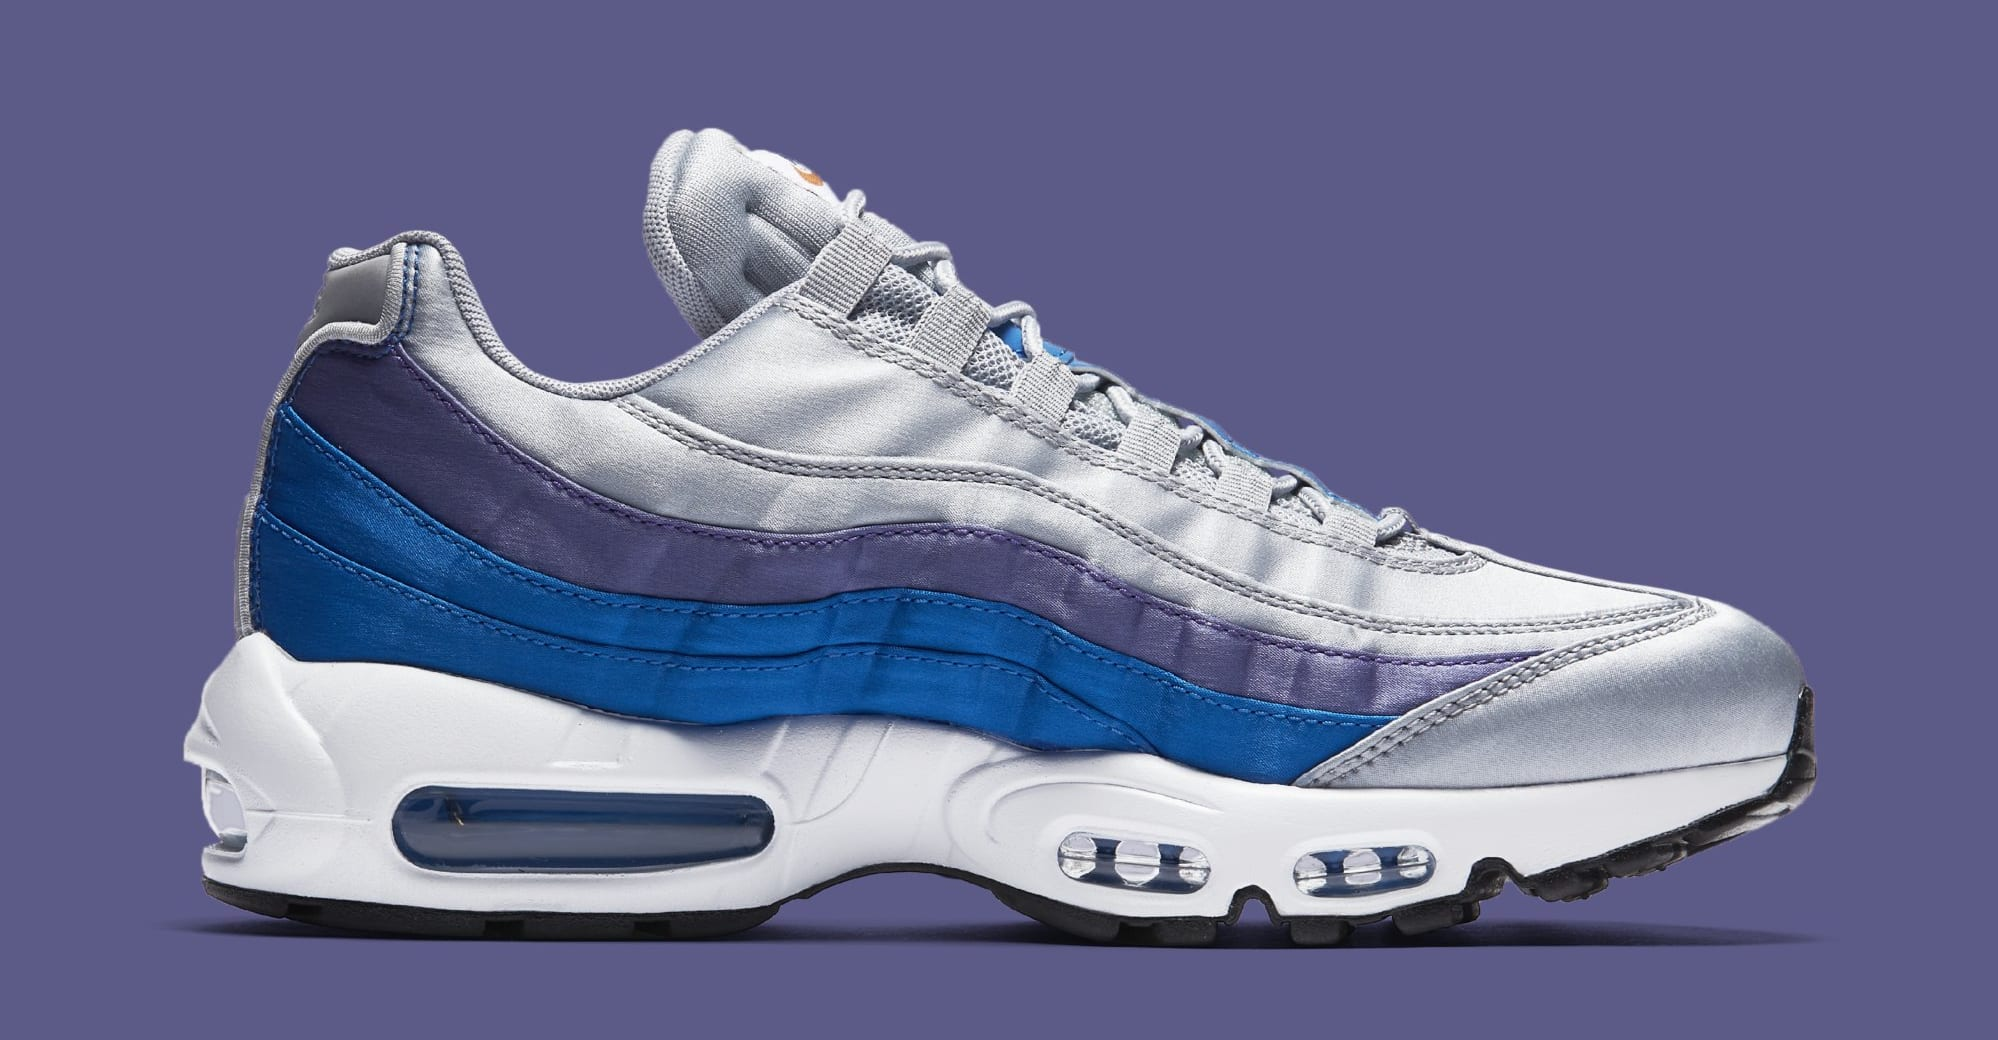 0a96168076 ... reduced image via nike nike air max 95 pinwheel aj2018 001 medial 66447  6f32e